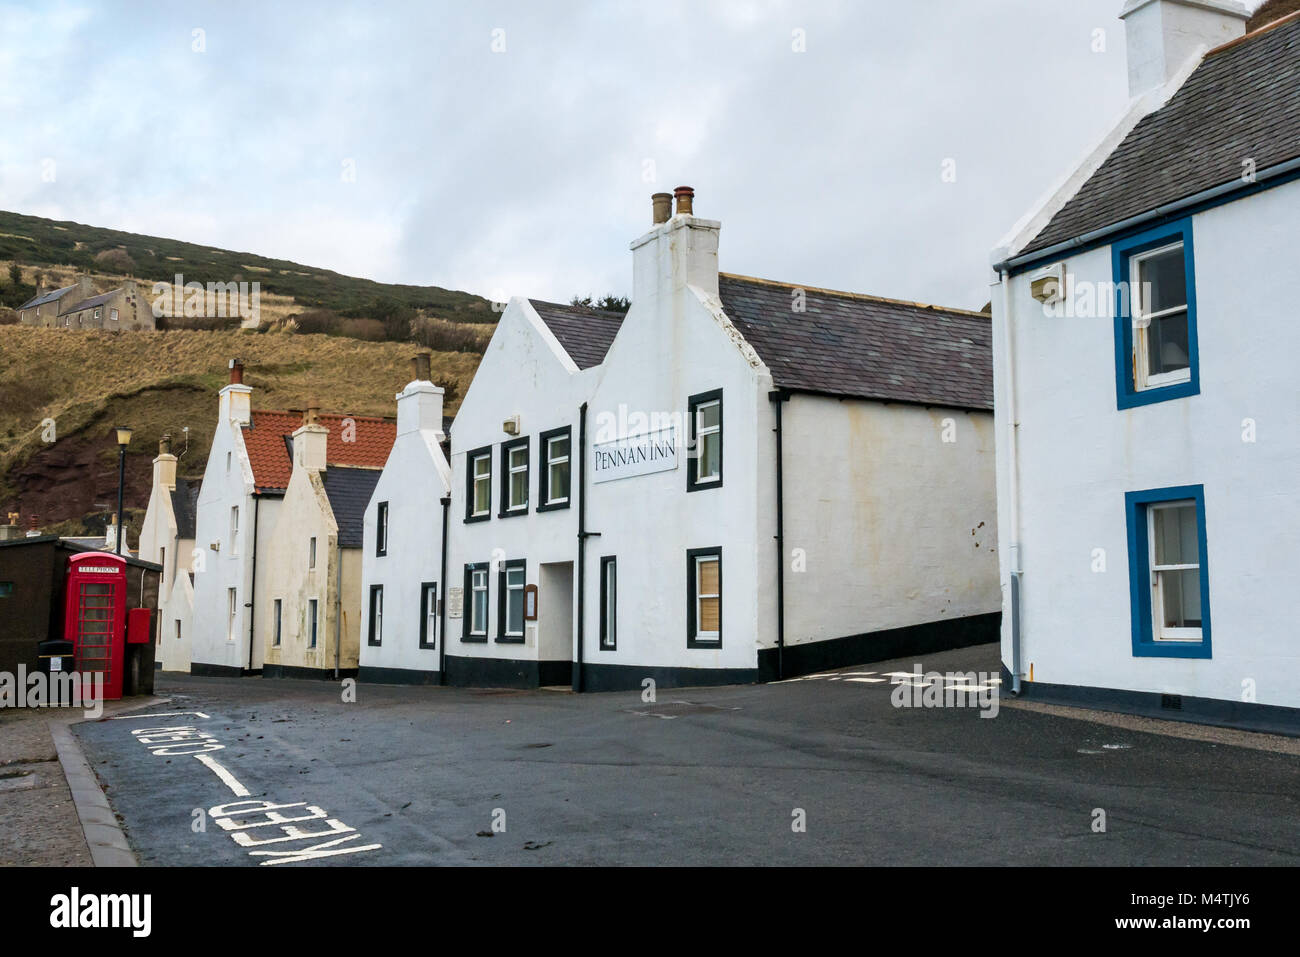 Pennan, Aberdeenshire, Scotland, UK. Pennan Inn and iconic red telephone box, film location for Bill Forsyth 1983 - Stock Image